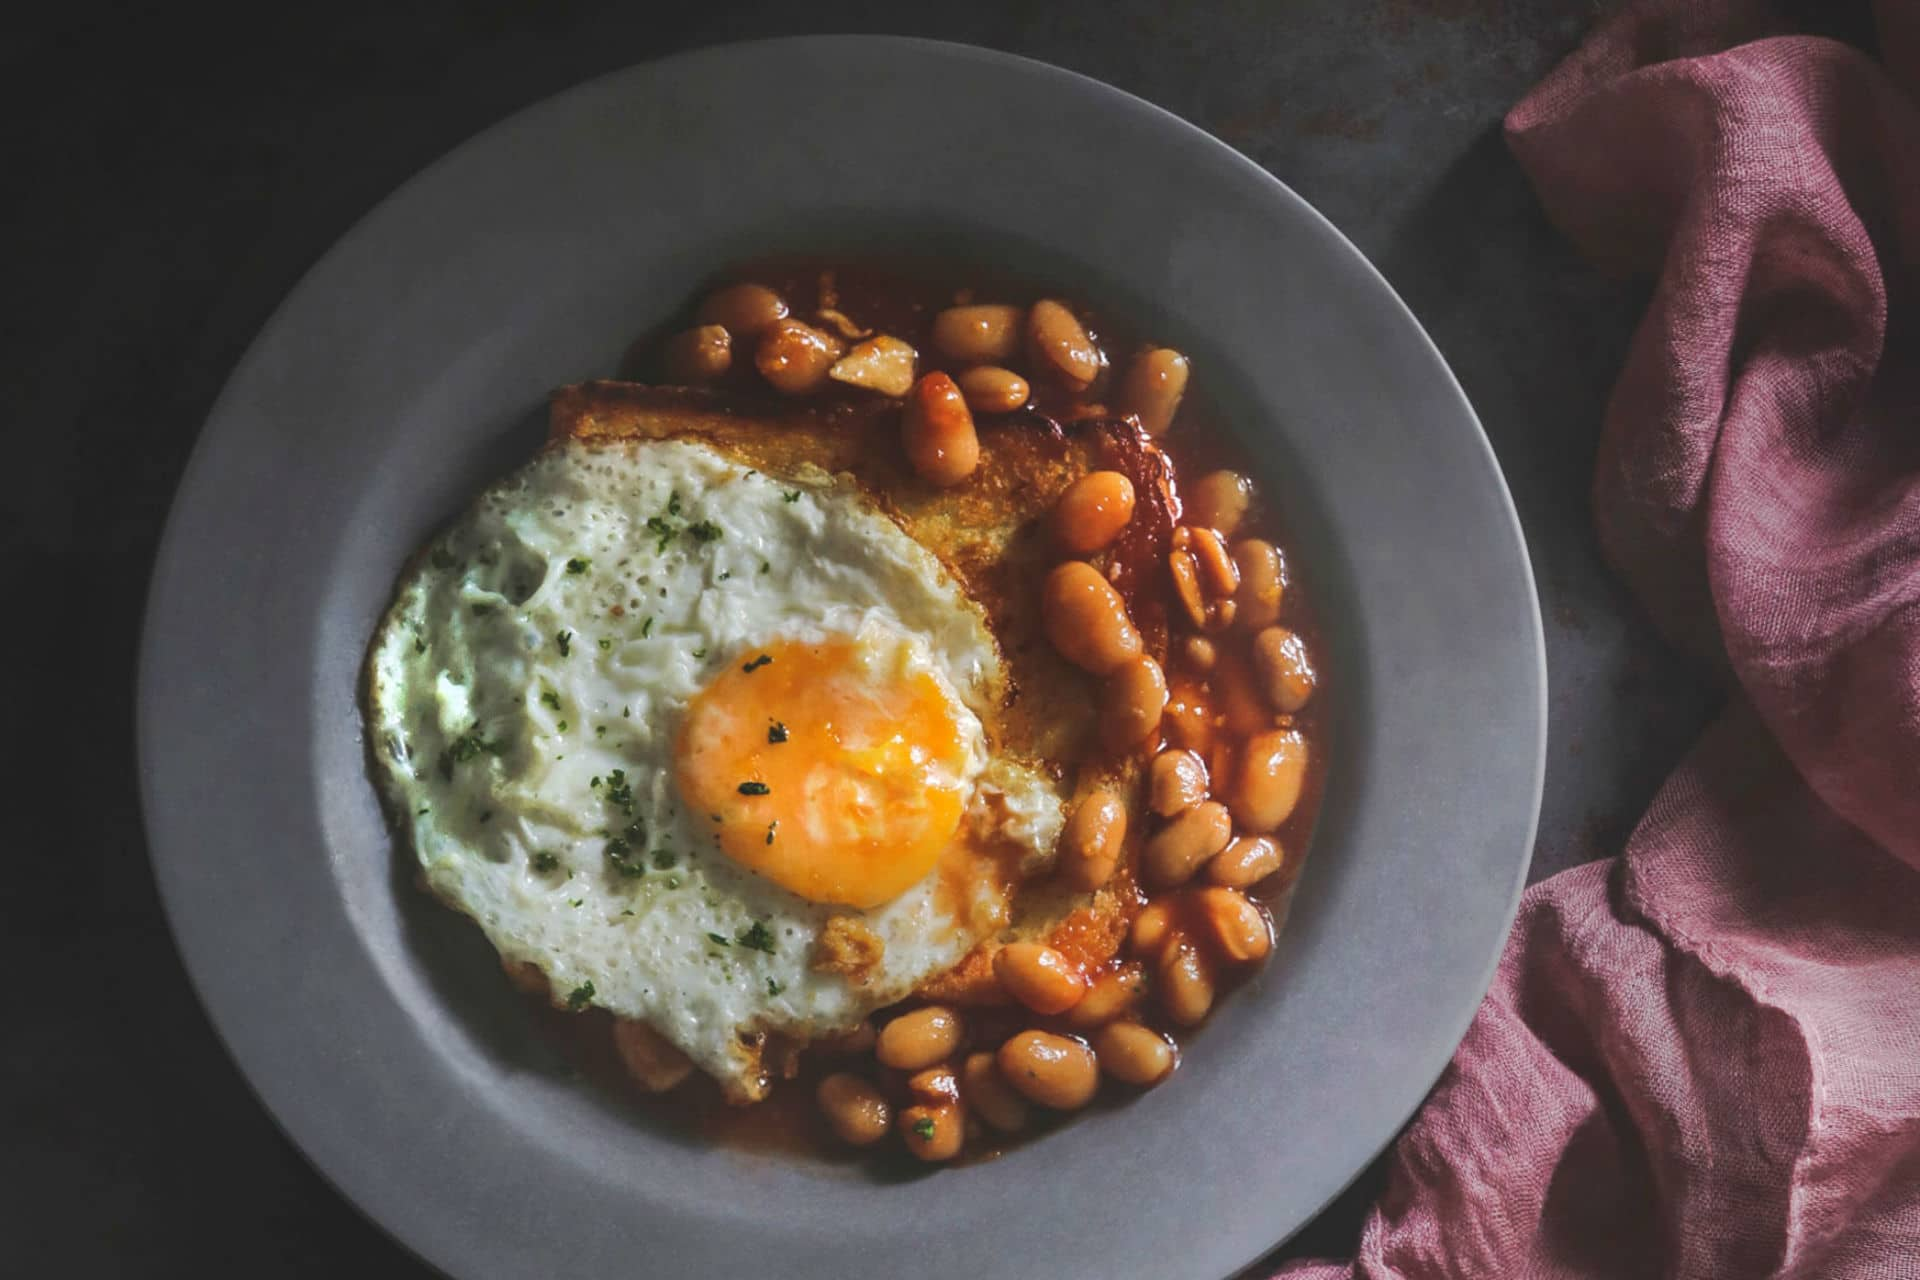 baked beans with toast and an egg